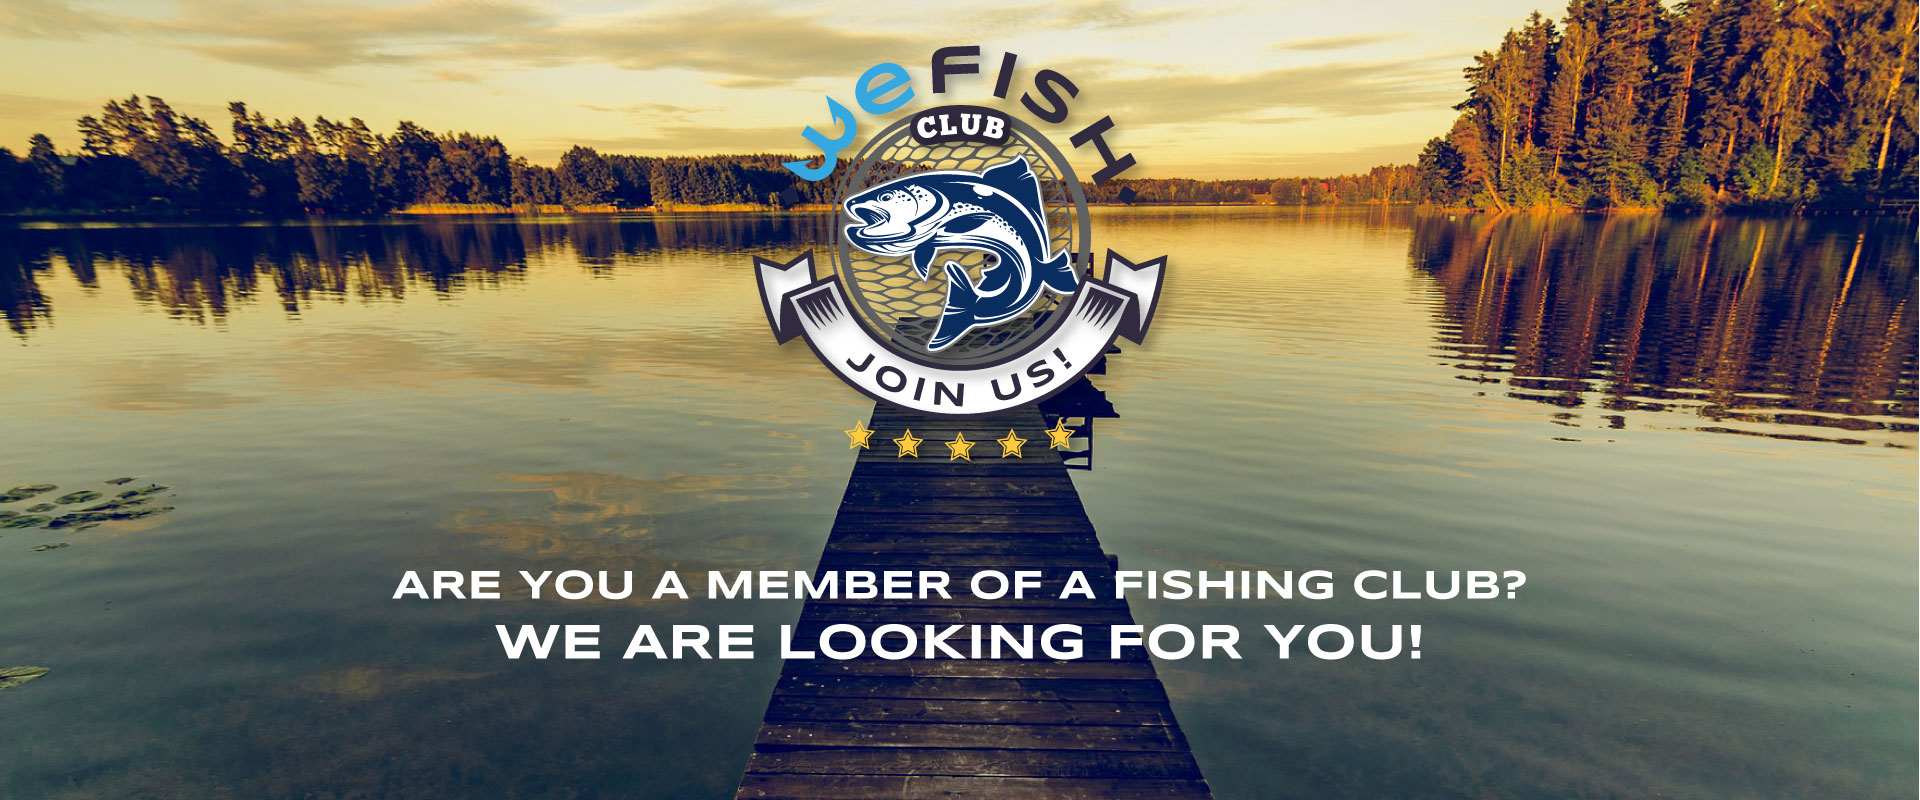 Wefish's Fishing Club